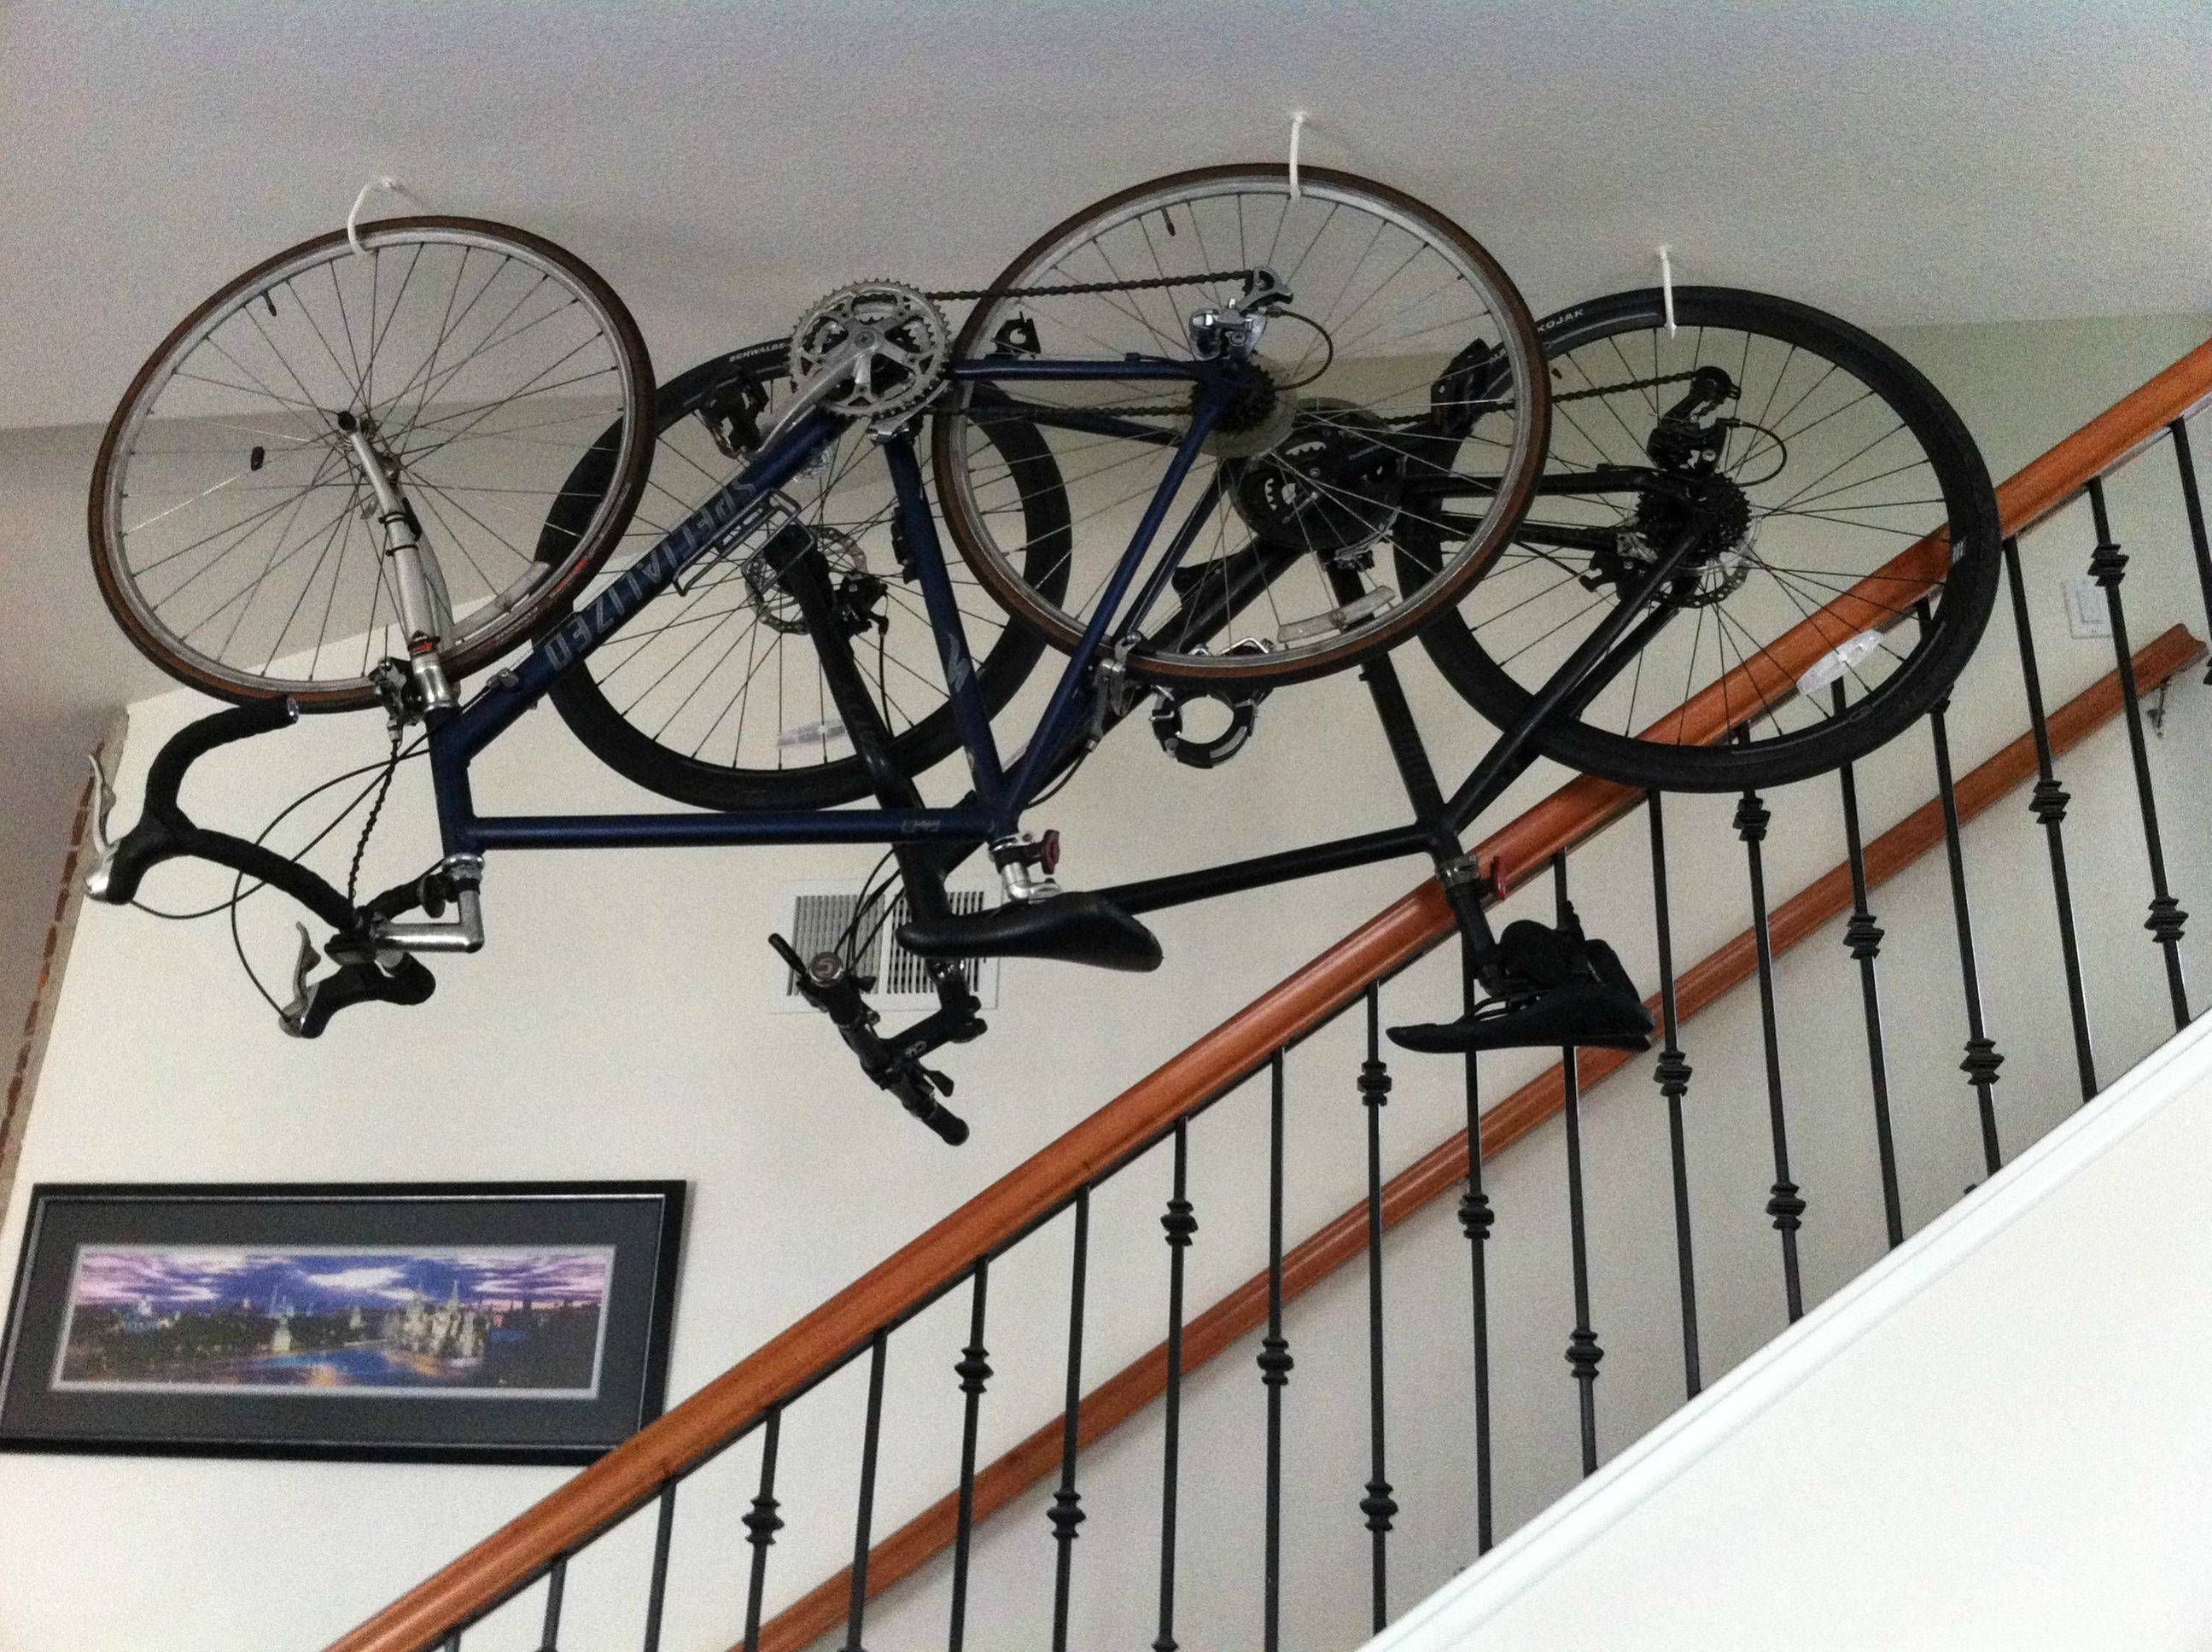 Hanging Bikes From Ceiling Apartment Google Search Bike Rack